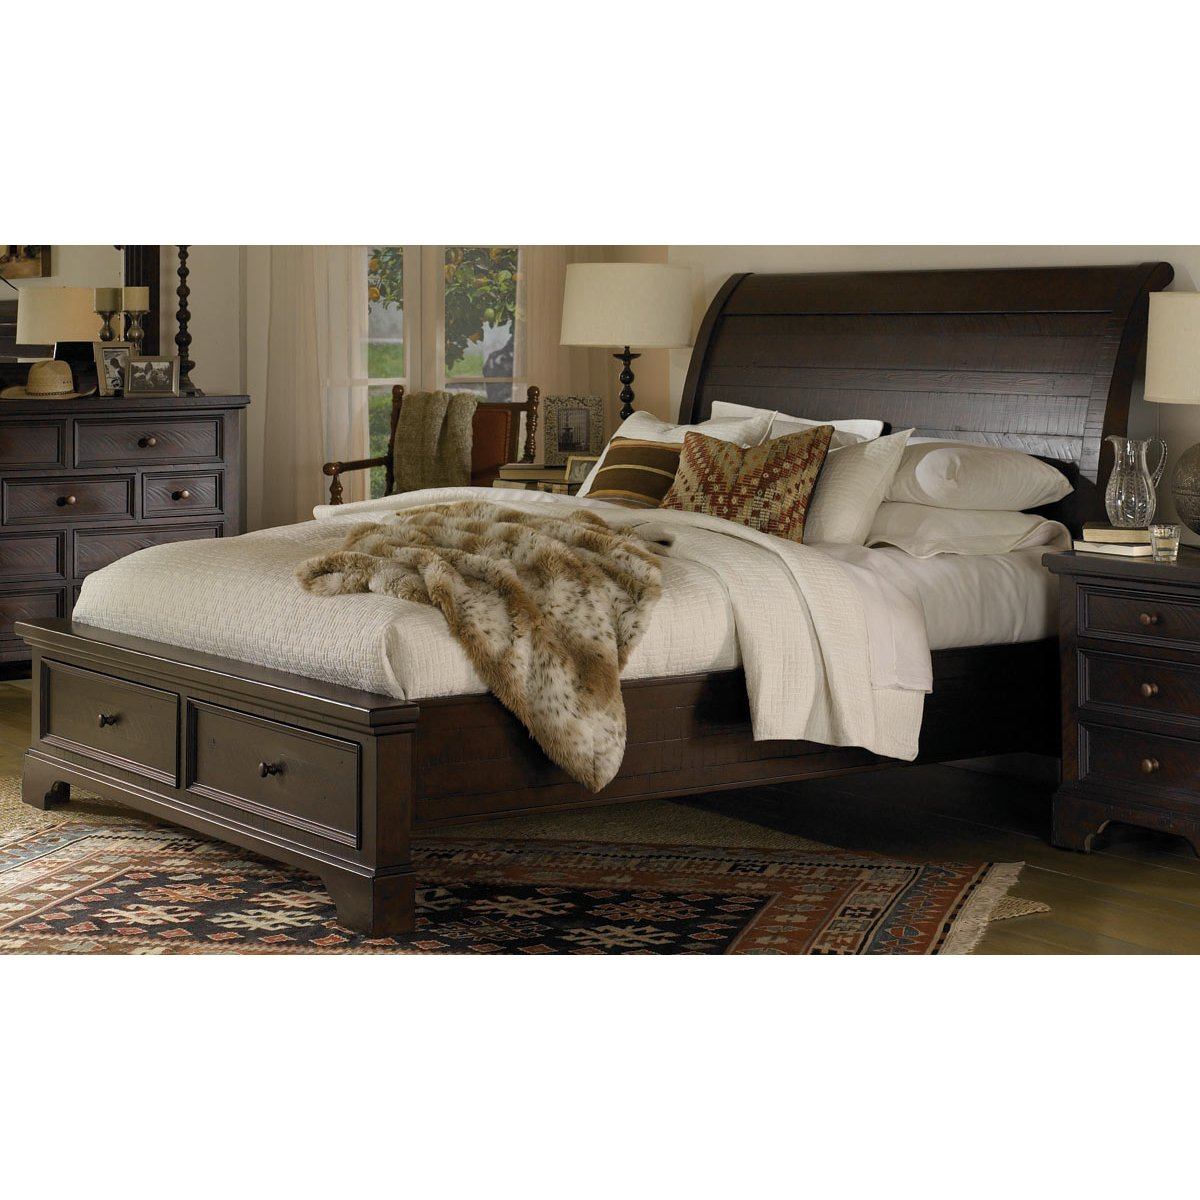 Bayfield mahogany queen storage bed for Bedroom furniture queen storage bed